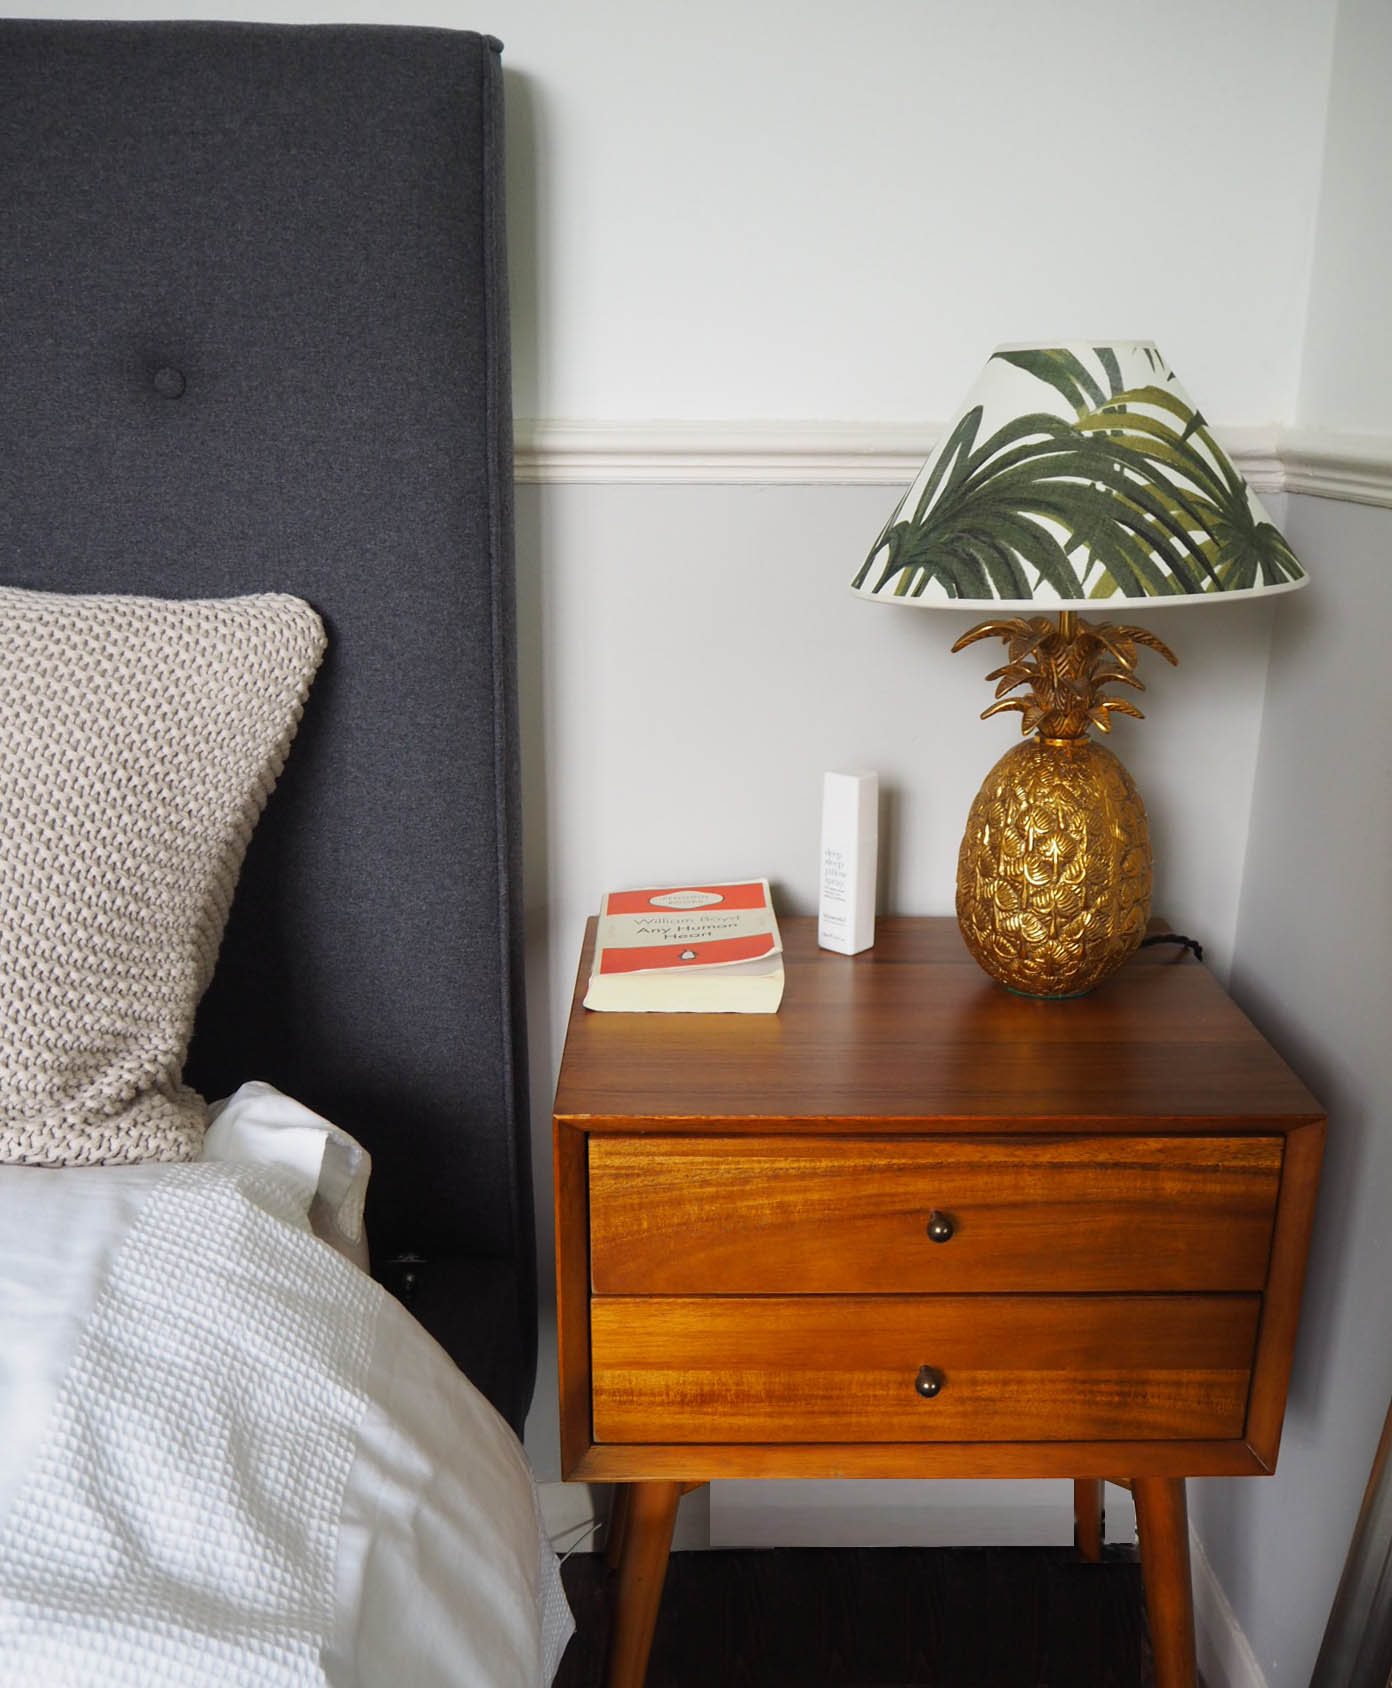 West elm side table with house of hackney lamp, and made.com bed